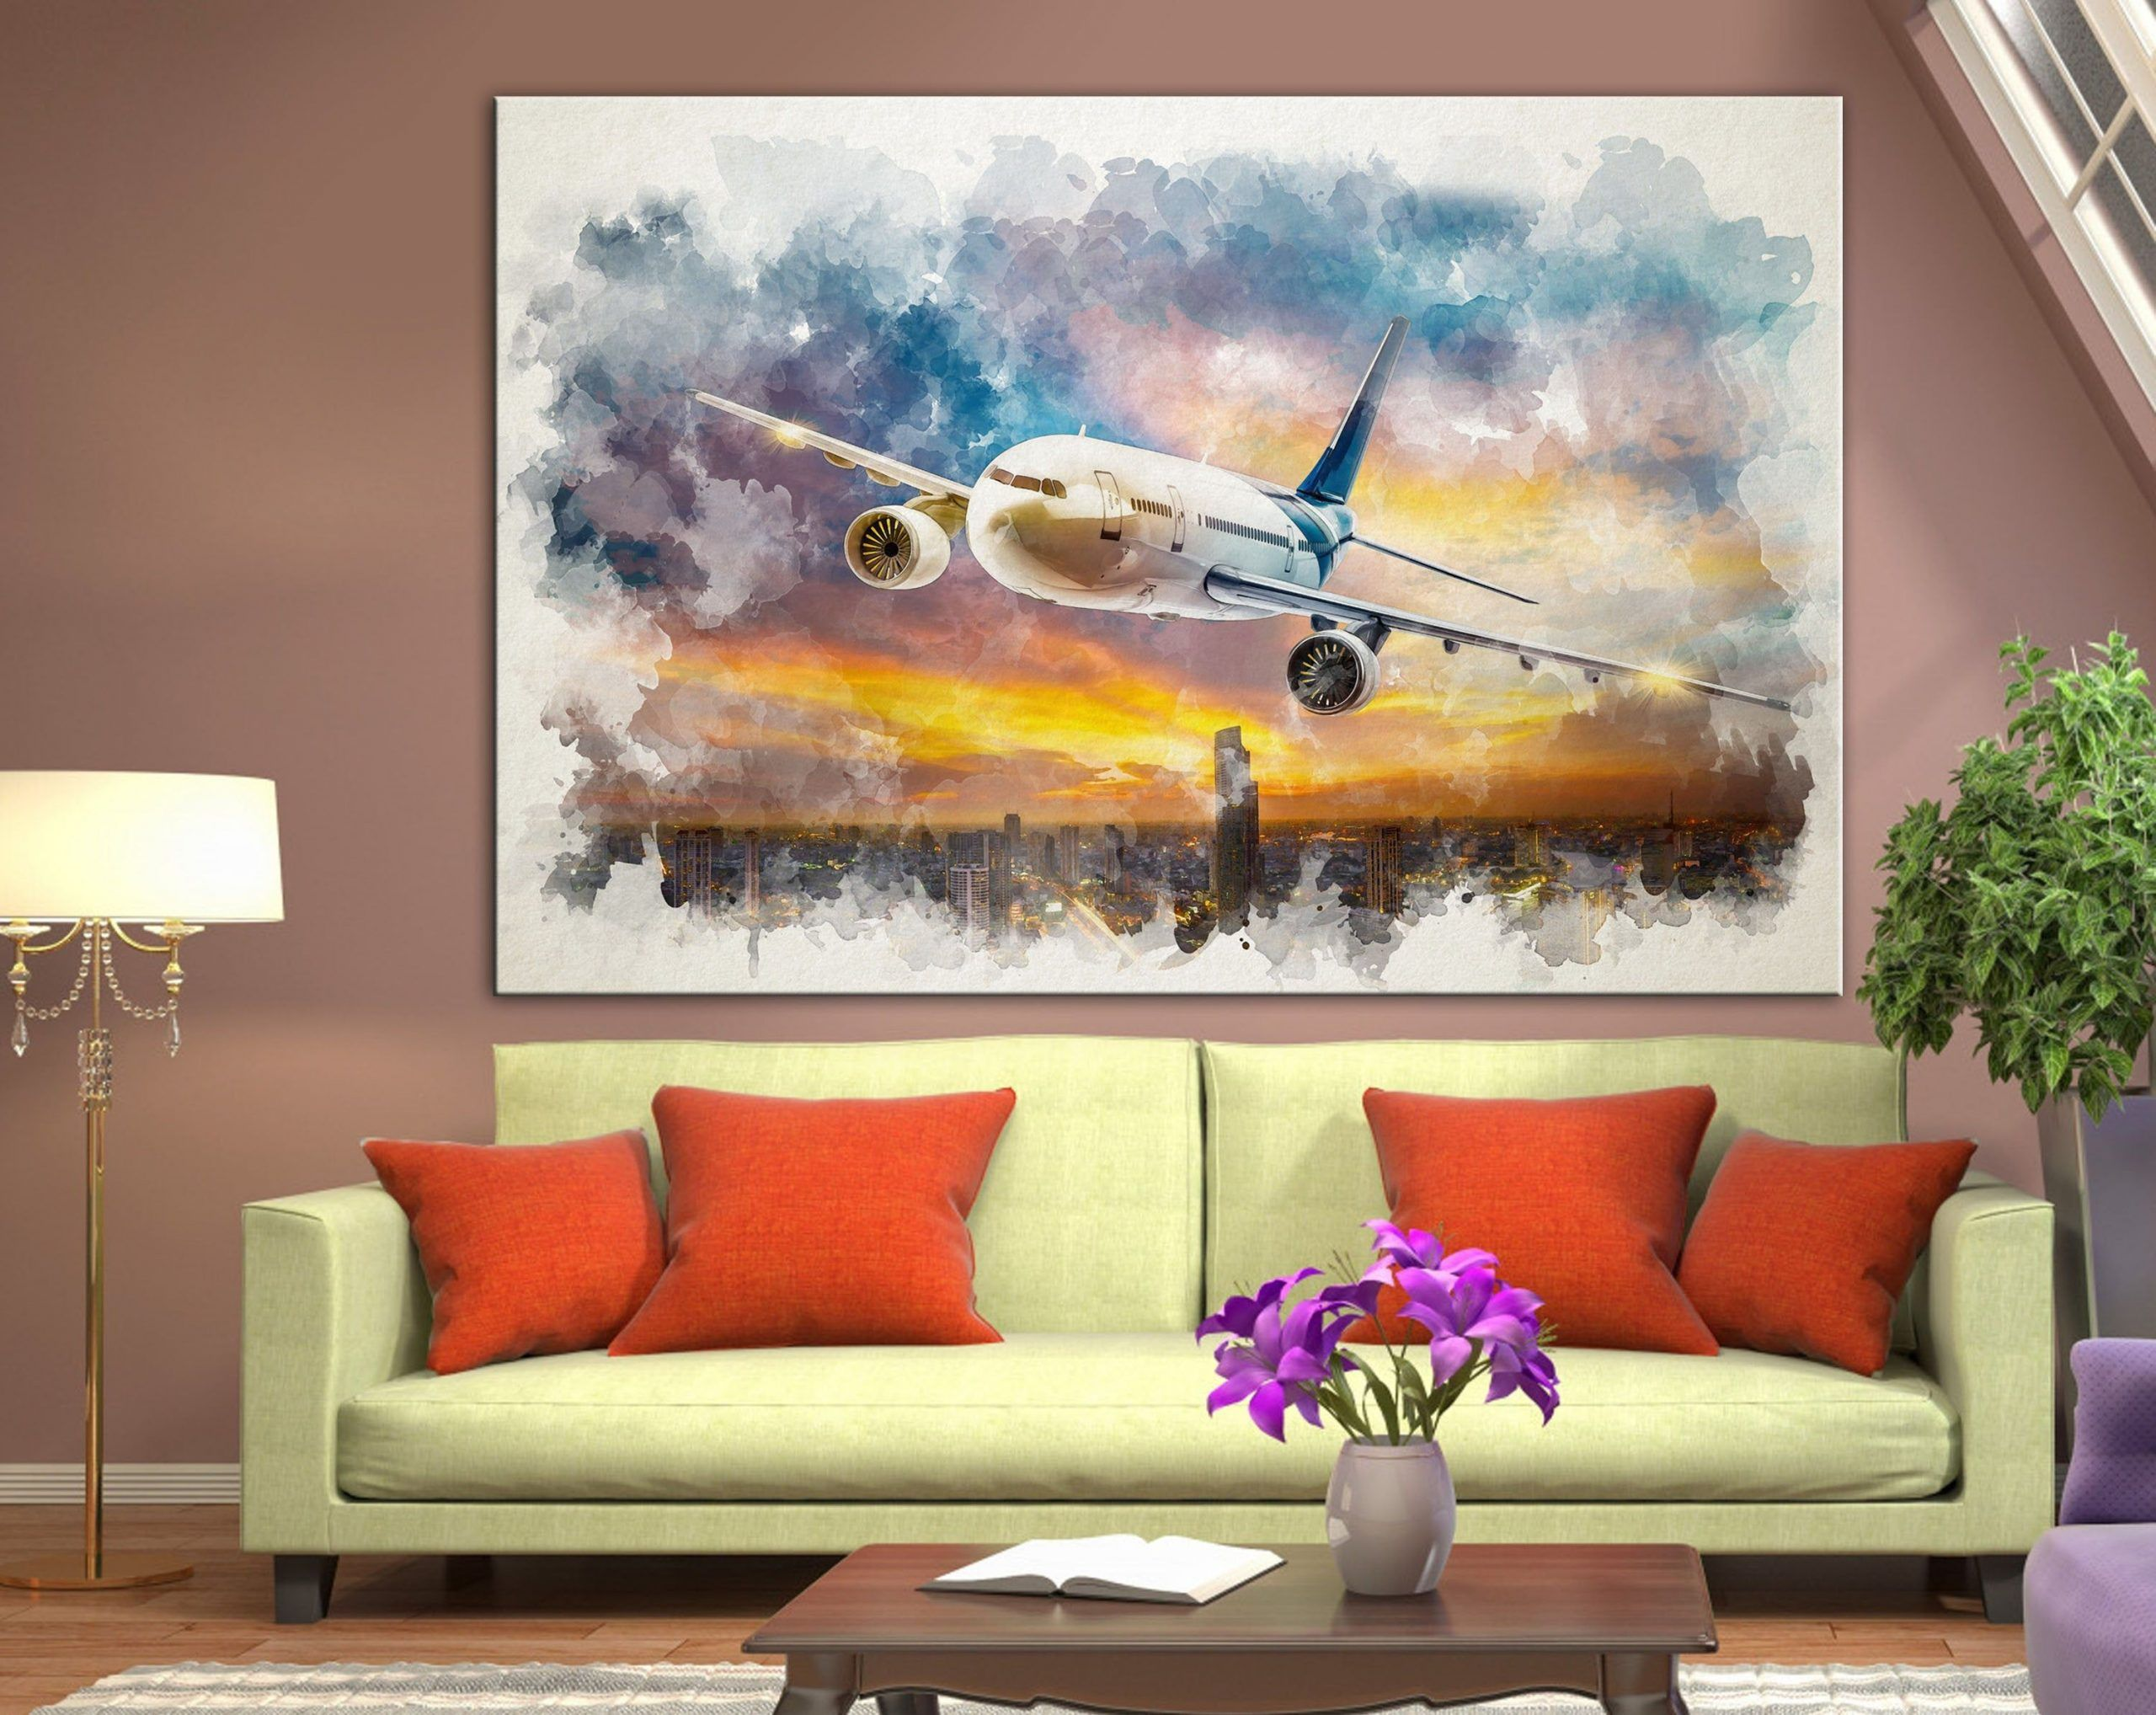 Watercolor Aircraft Canvas Airplane Night Town Art Airplane Wall Art Aviation Print Plane Over The City Canva Airplane Wall Art Cities Canvas Airplane Wall